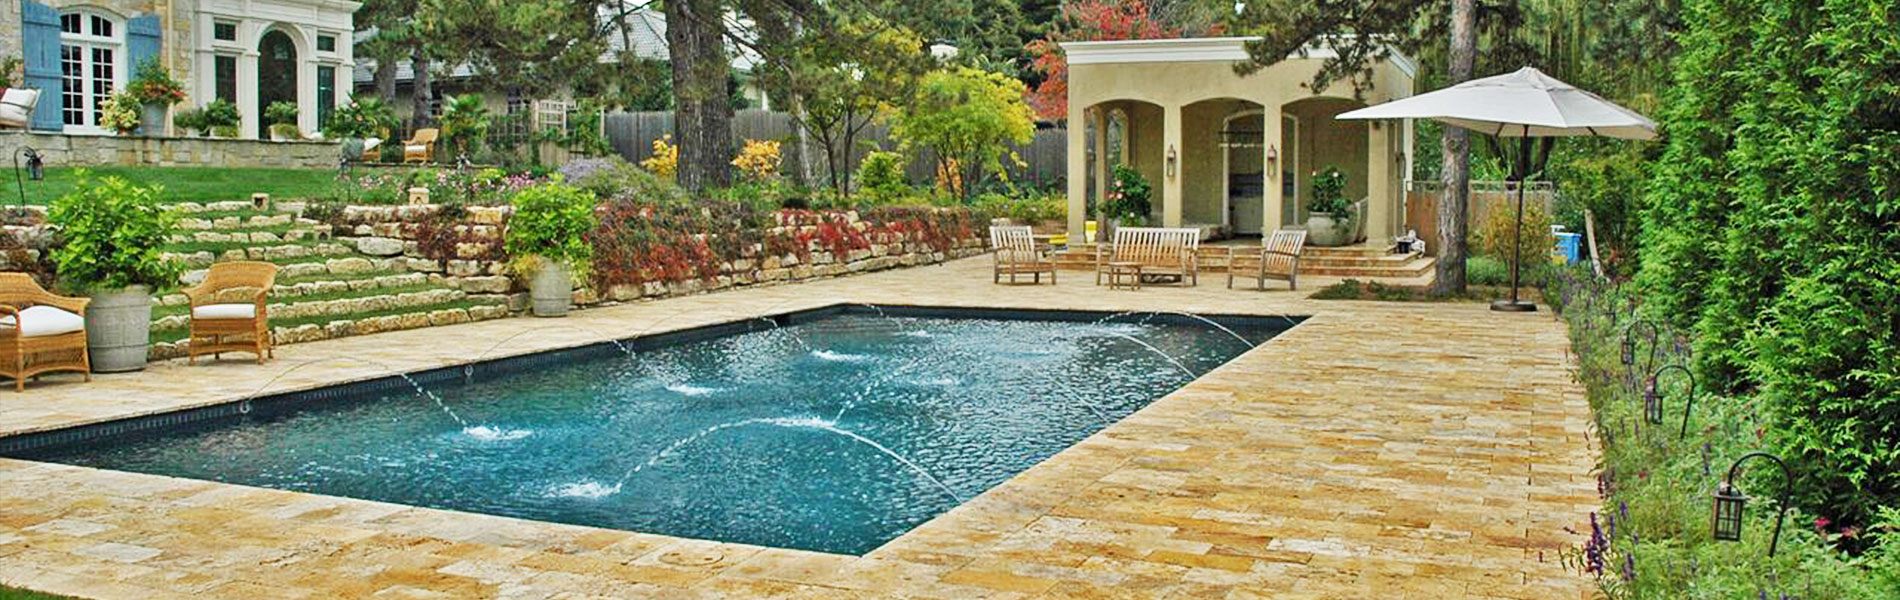 Residential pool construction services in omaha ne for Pool design omaha